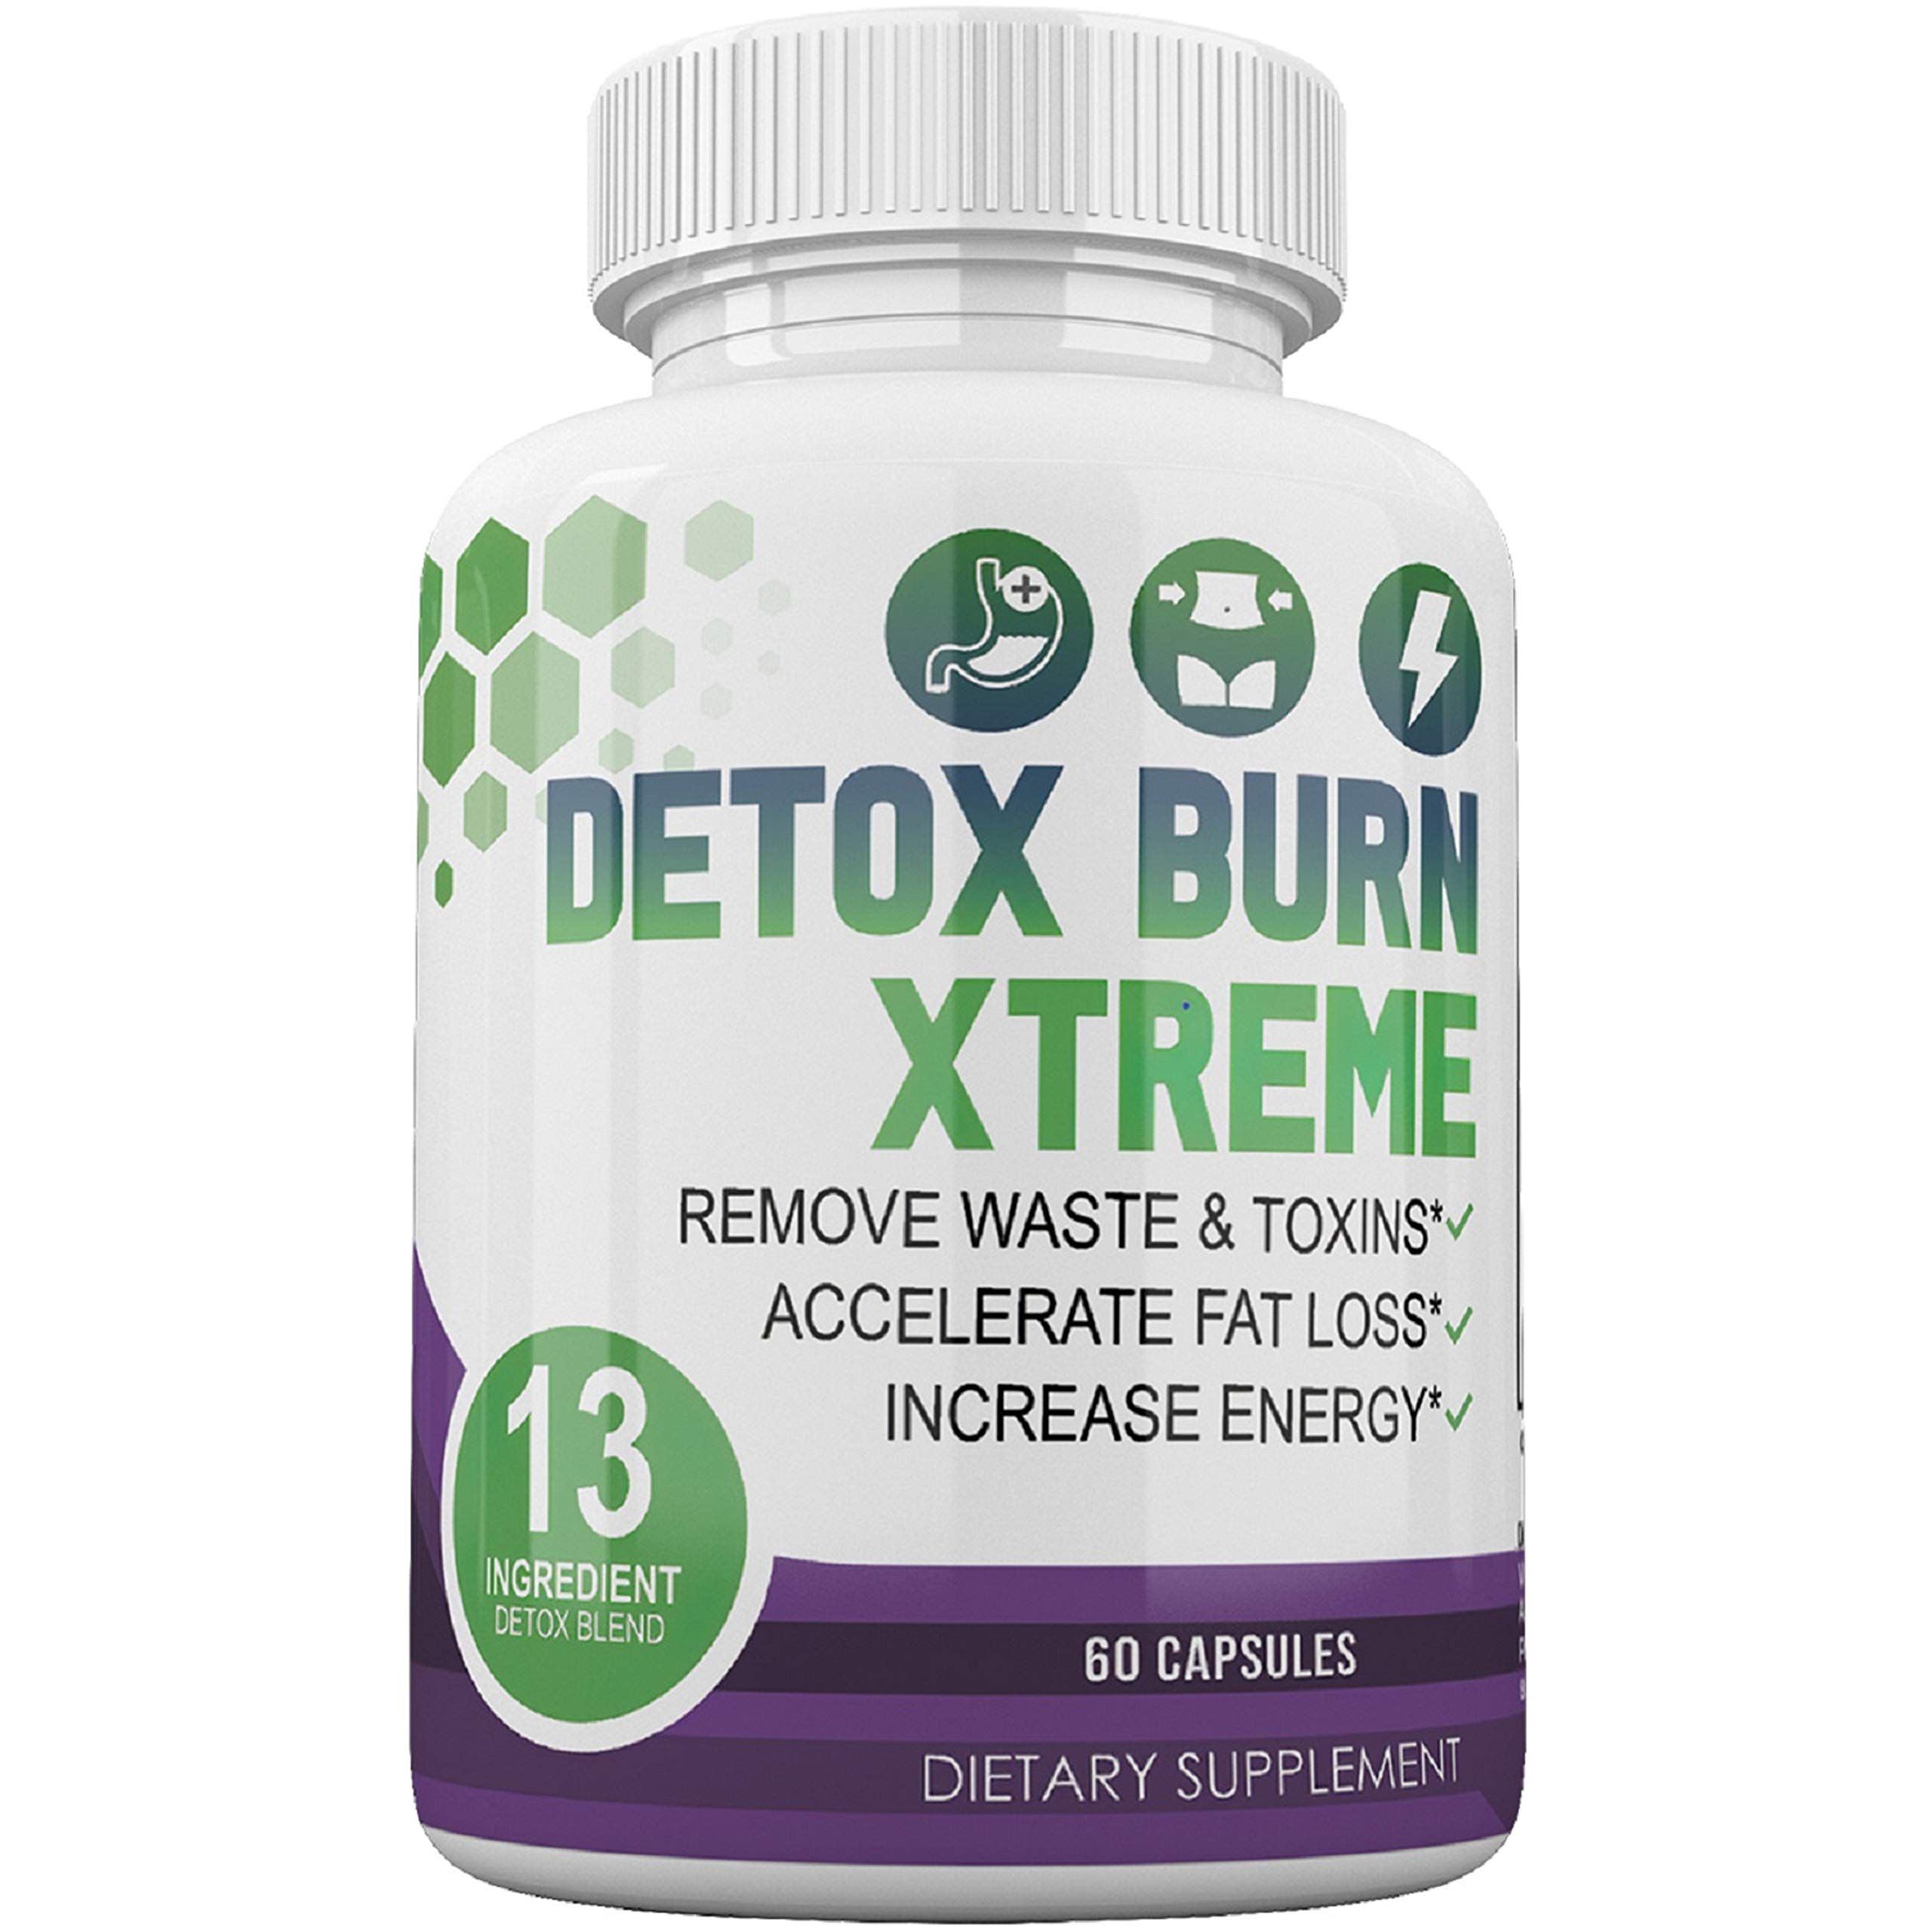 Detox Burn Xtreme - 13 Ingredient Detox Blend - Dietary Supplement - 60 Capsules - 30 Day Supply